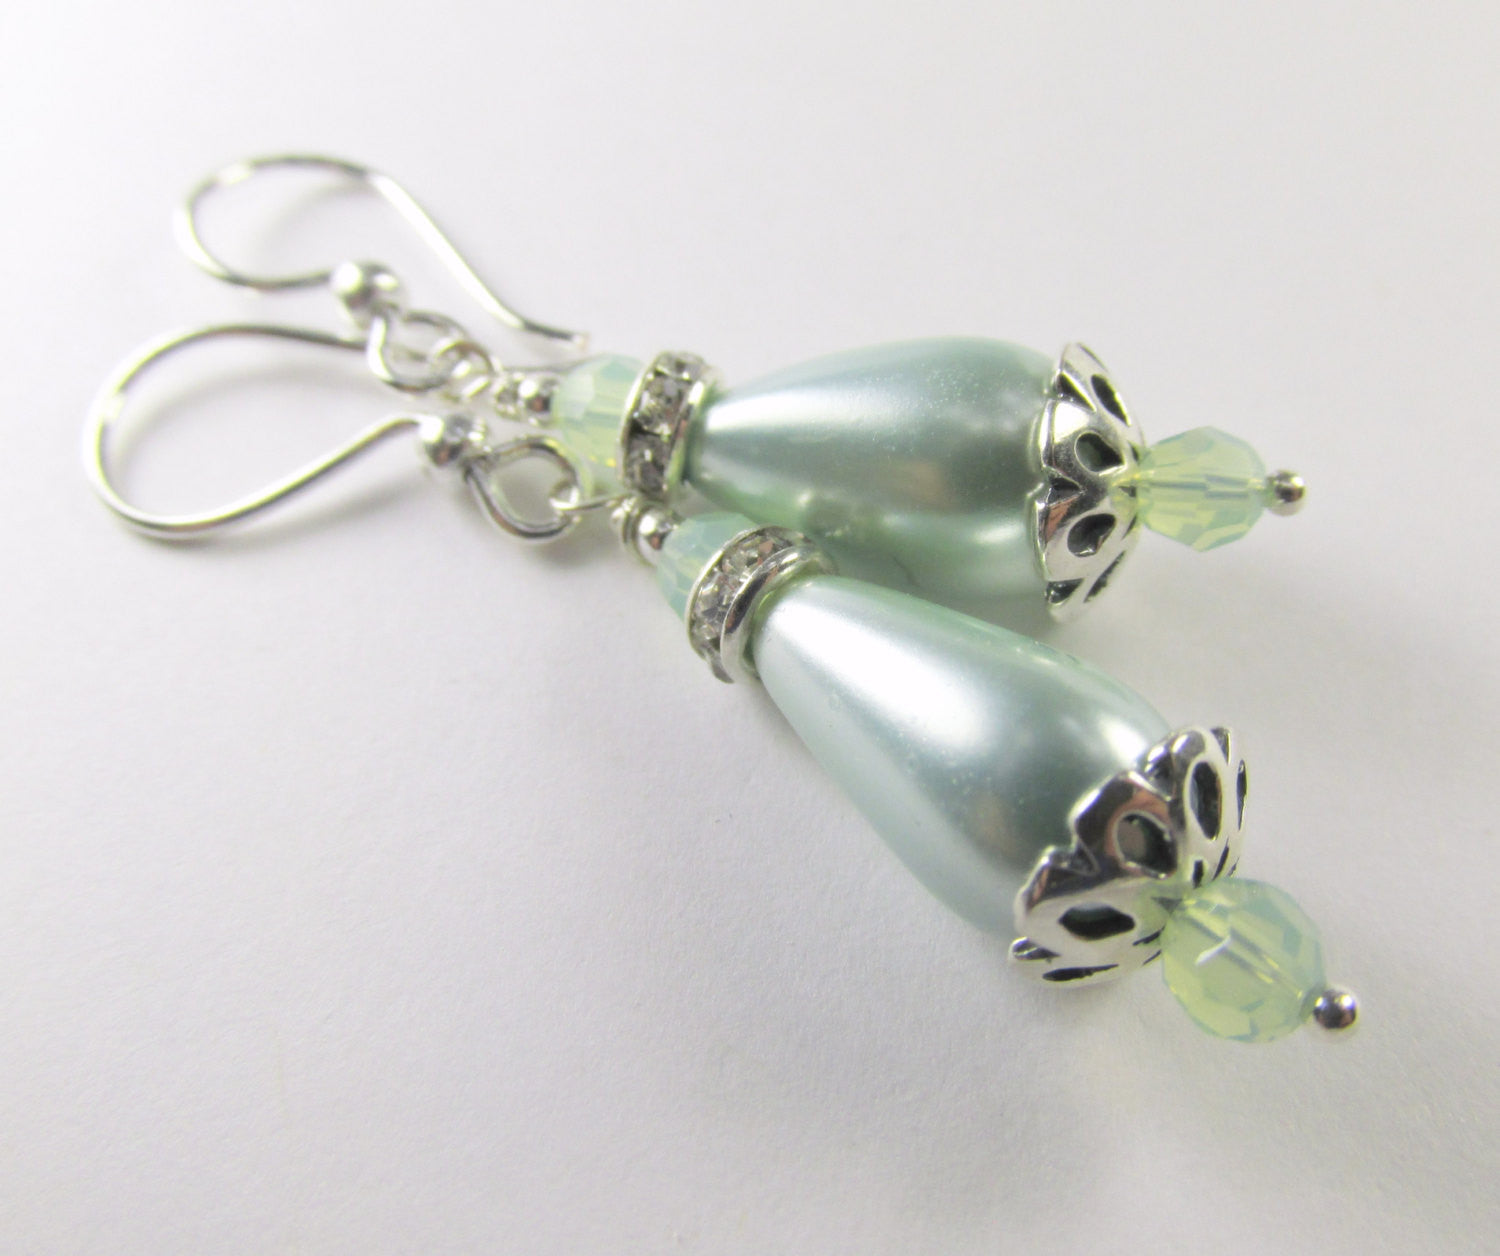 Mint Green Pearl and Chrysolite Opal Swarovksi Crystal Teardrop Bridal or Bridesmaid Earrings on Sterling Silver Wire - Odyssey Creations